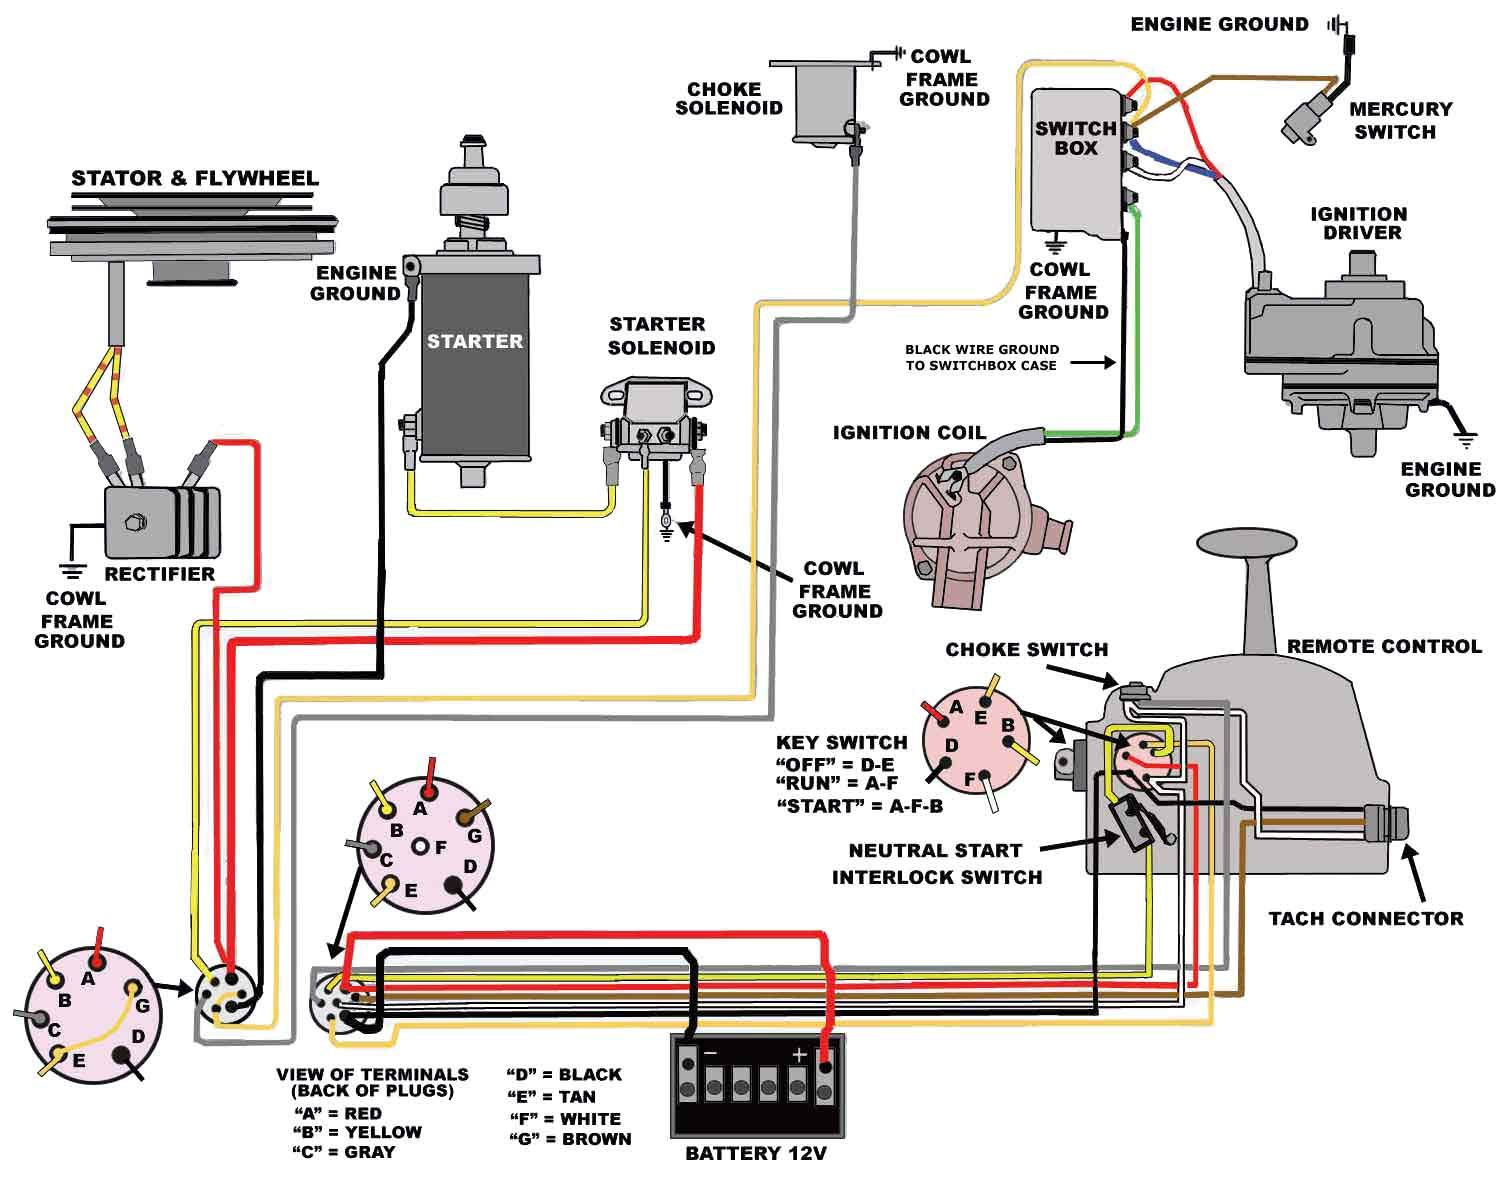 hight resolution of mercury kill switch diagram wiring diagram blog mercury kill switch wiring diagram mercury kill switch wiring diagram